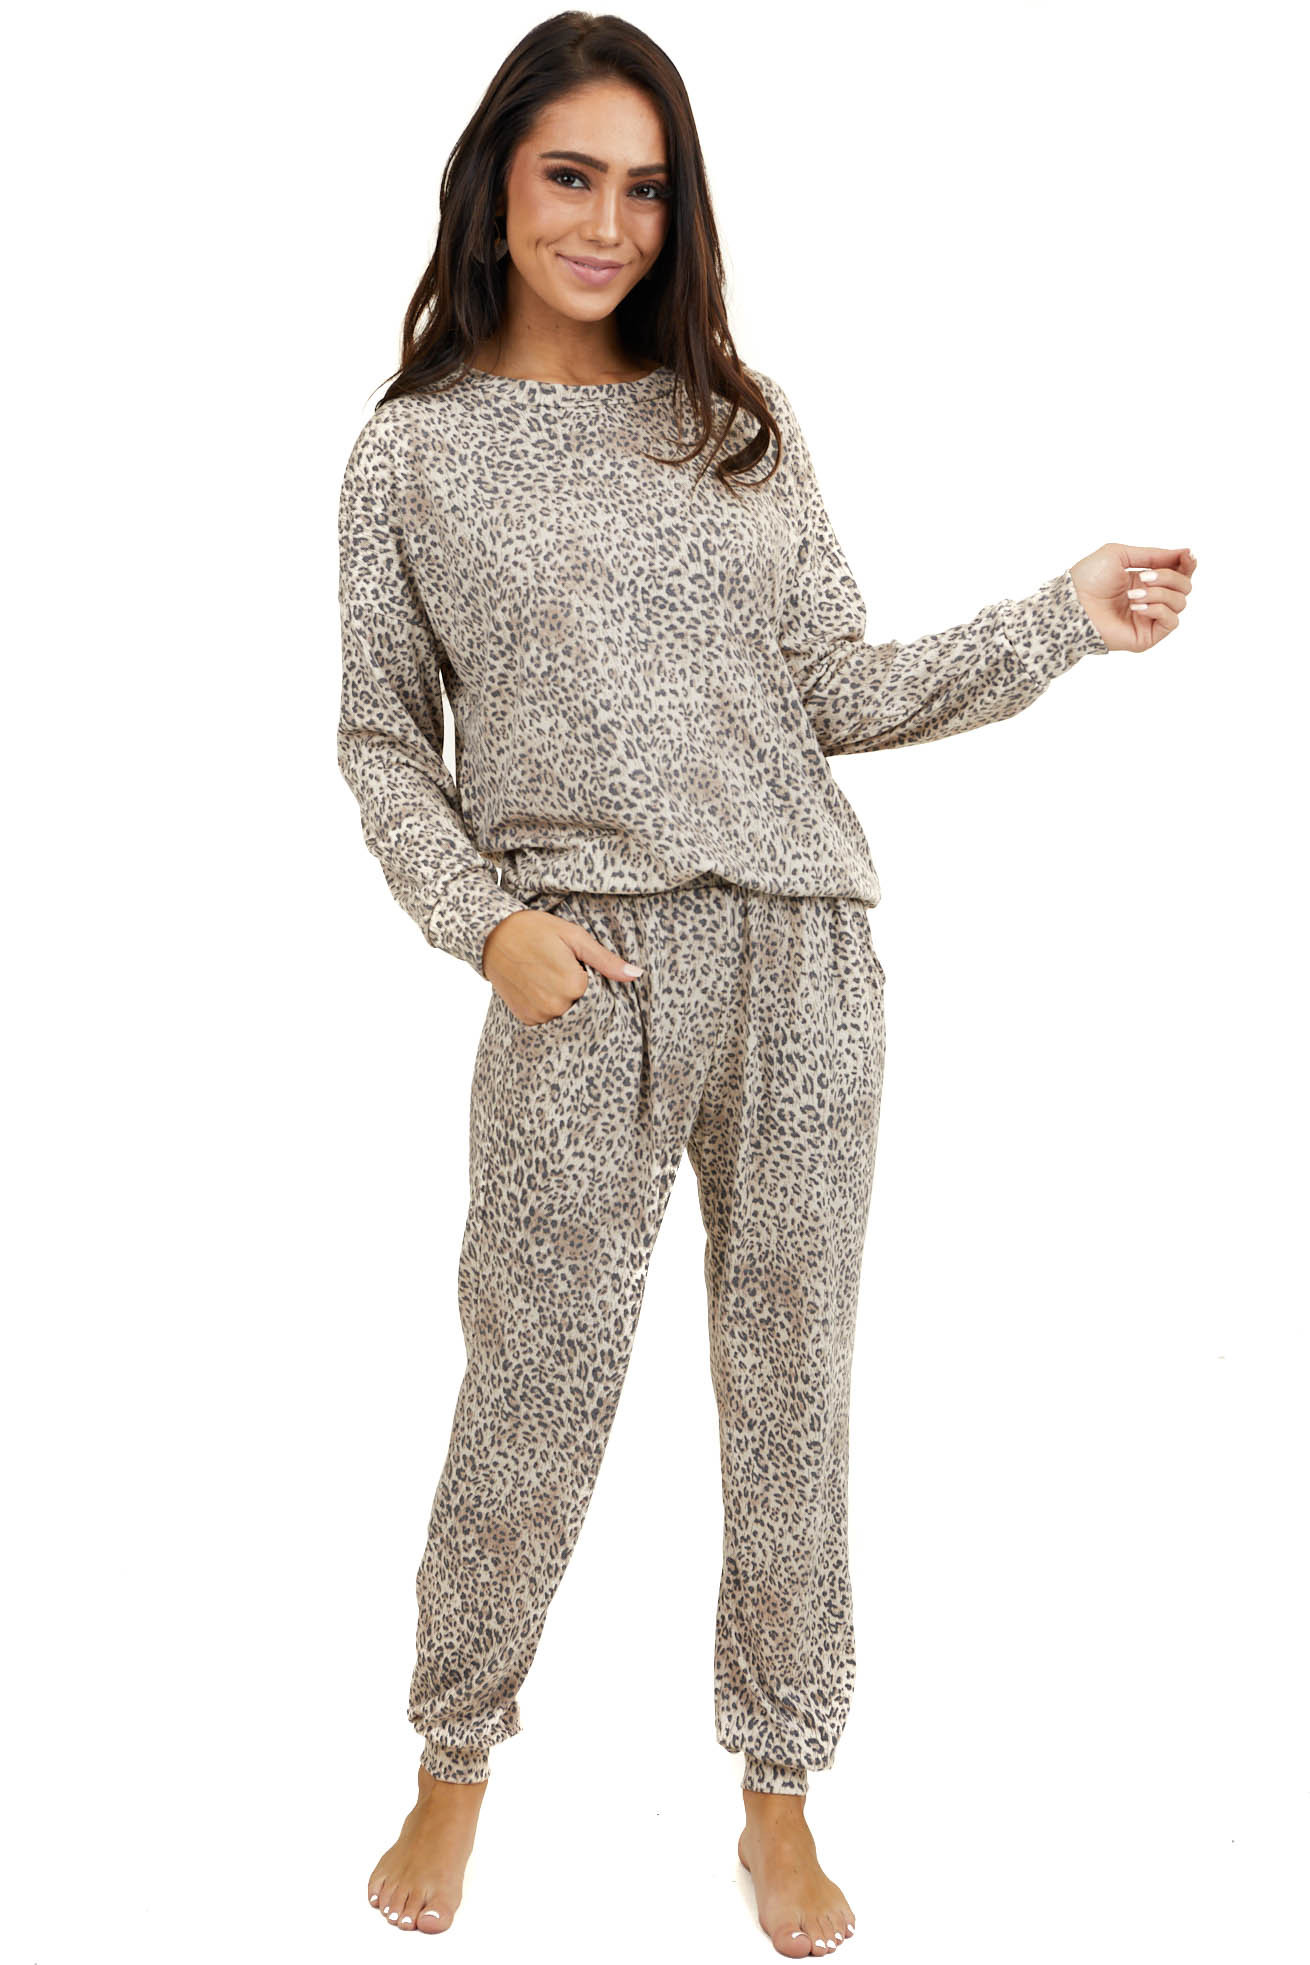 Latte Leopard Print Knit Top and Sweatpants Two Piece Set